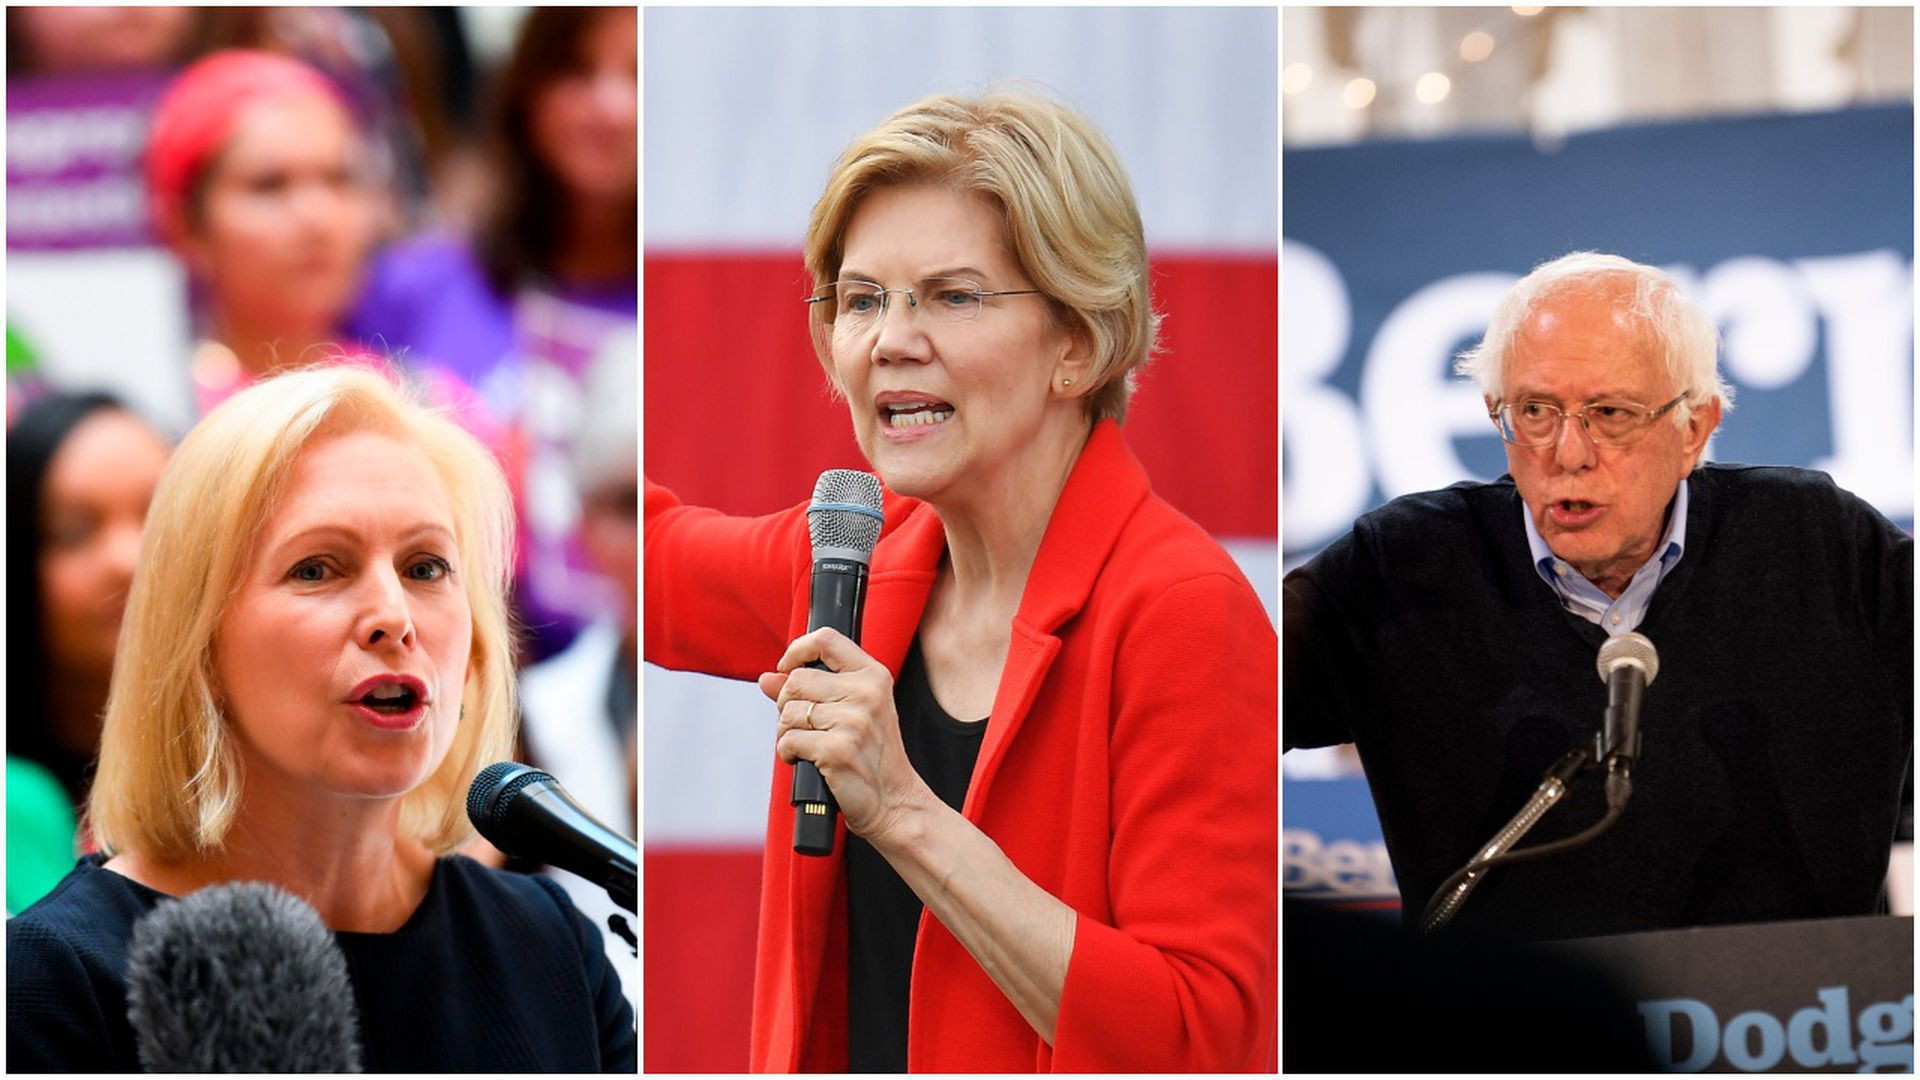 What the 2020 candidates are saying about abortion